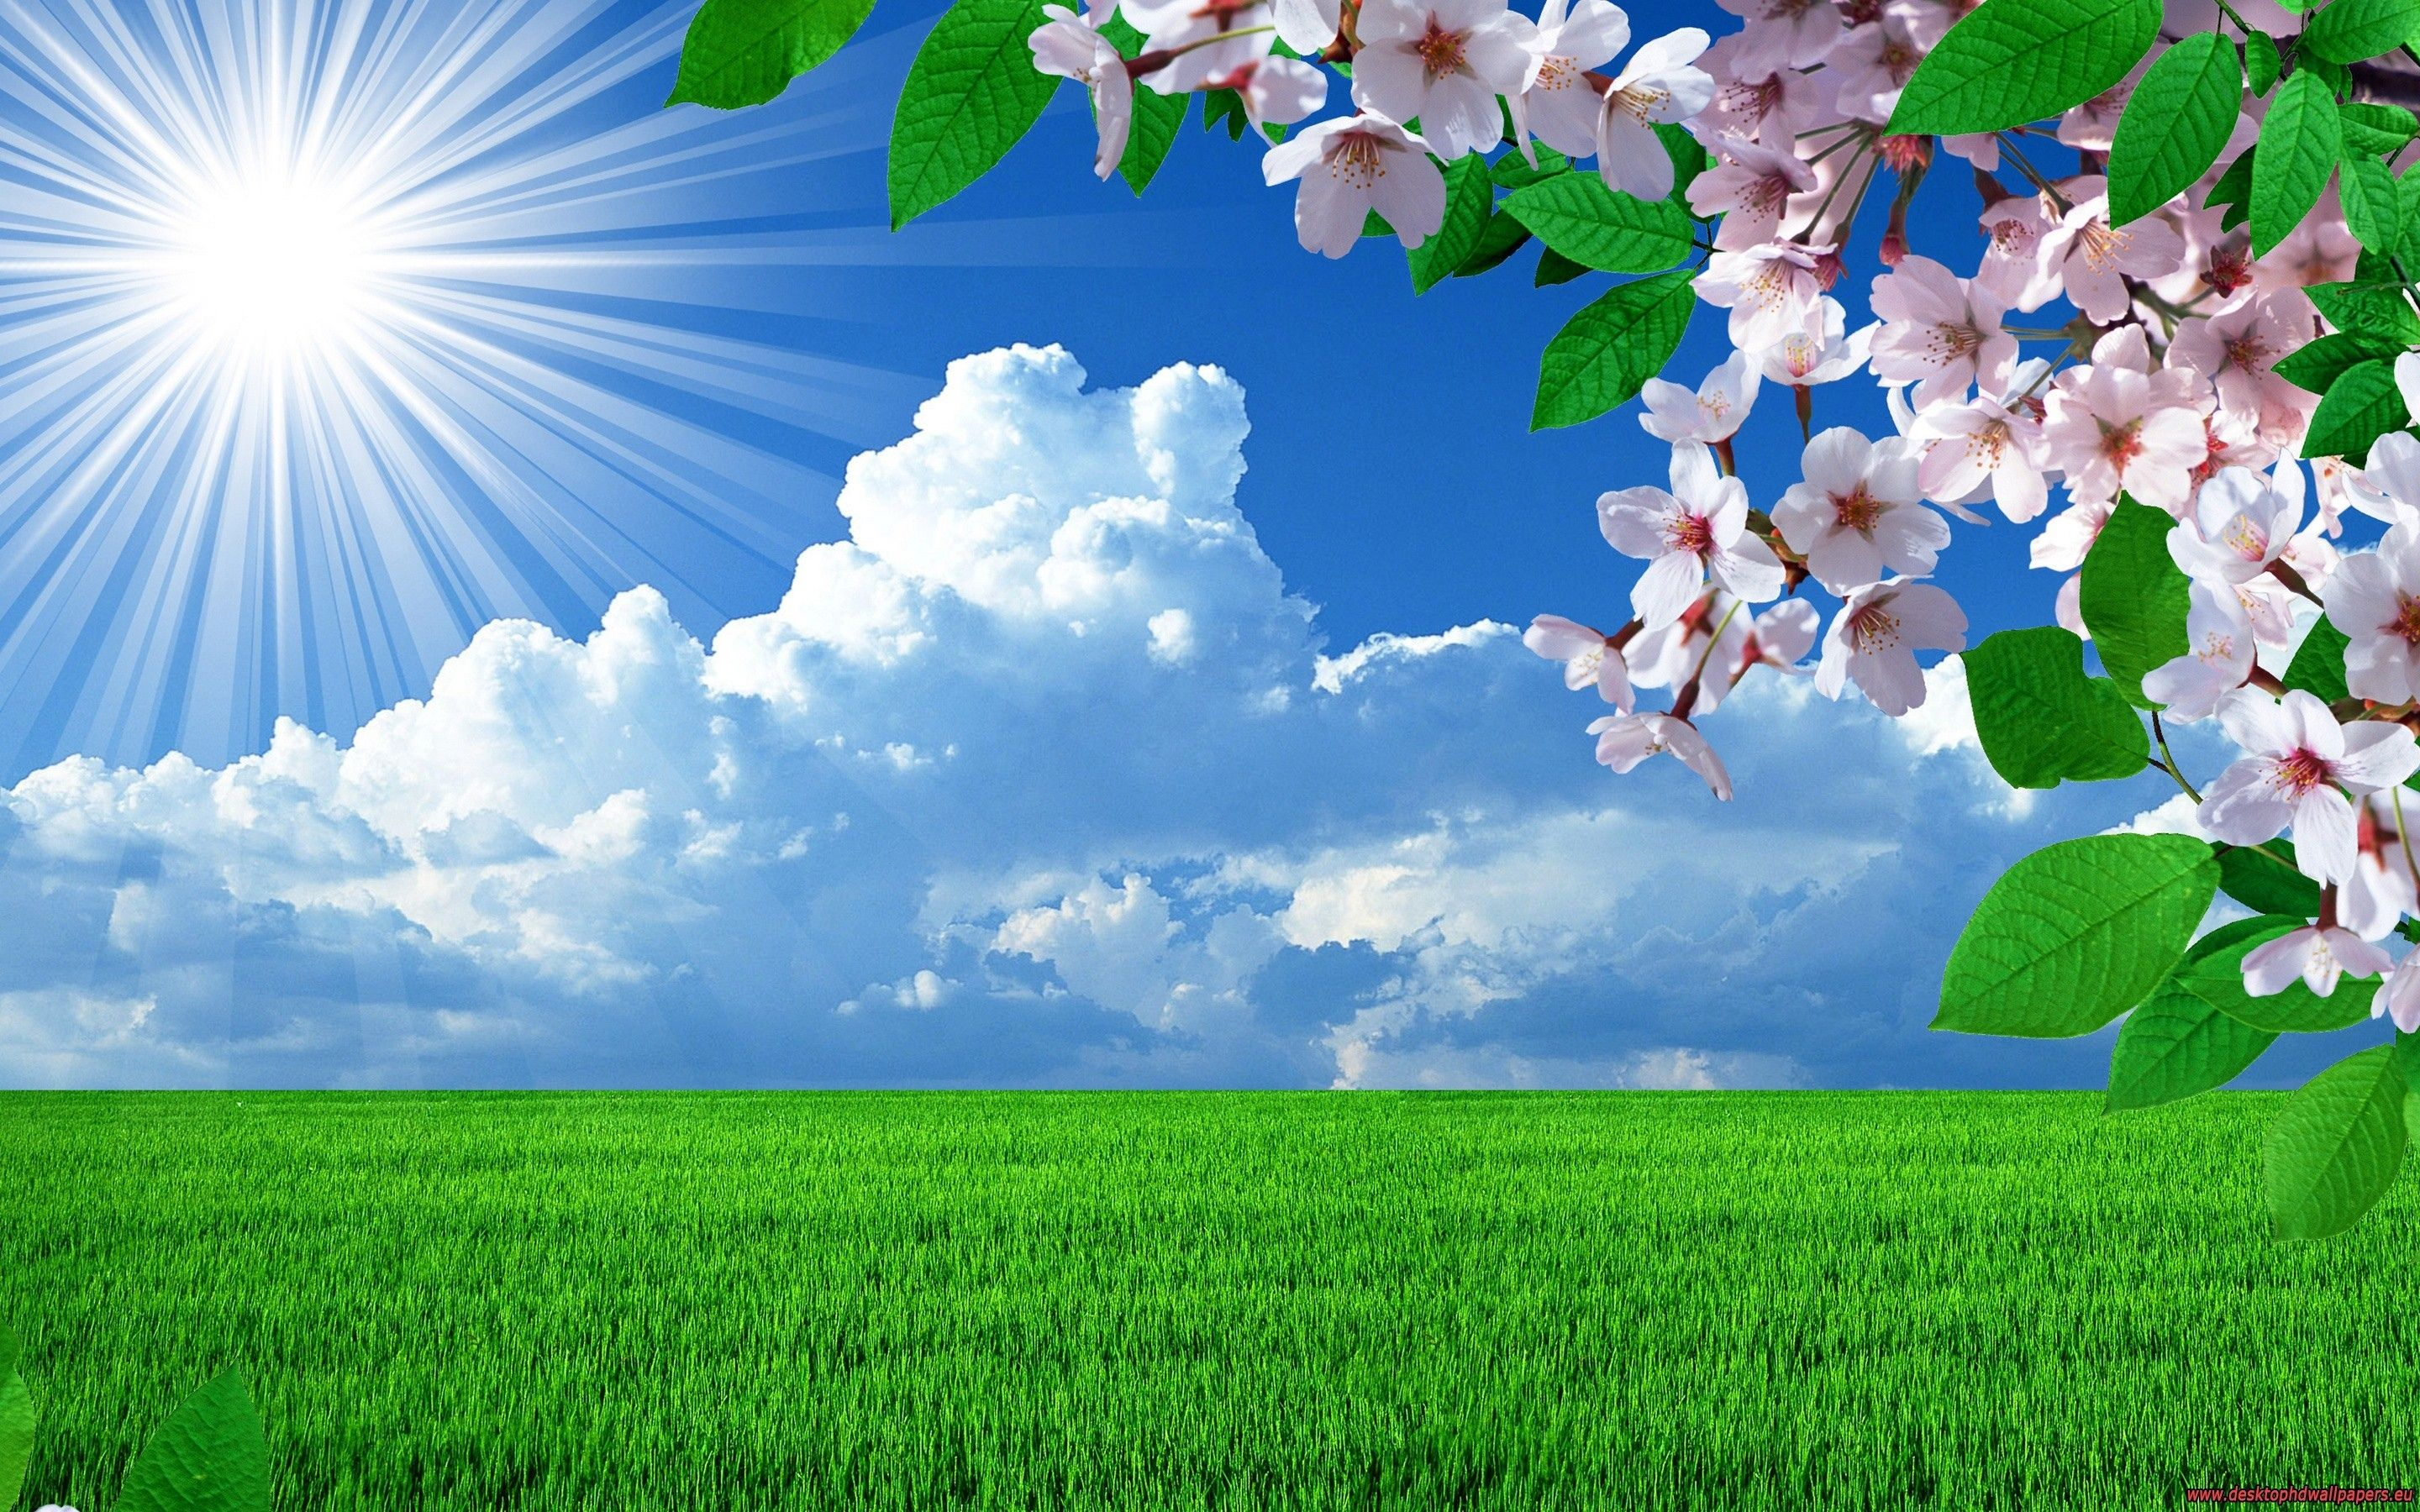 Spring Wallpapers Beautiful Nature Spring Spring Wallpaper Spring Desktop Wallpaper